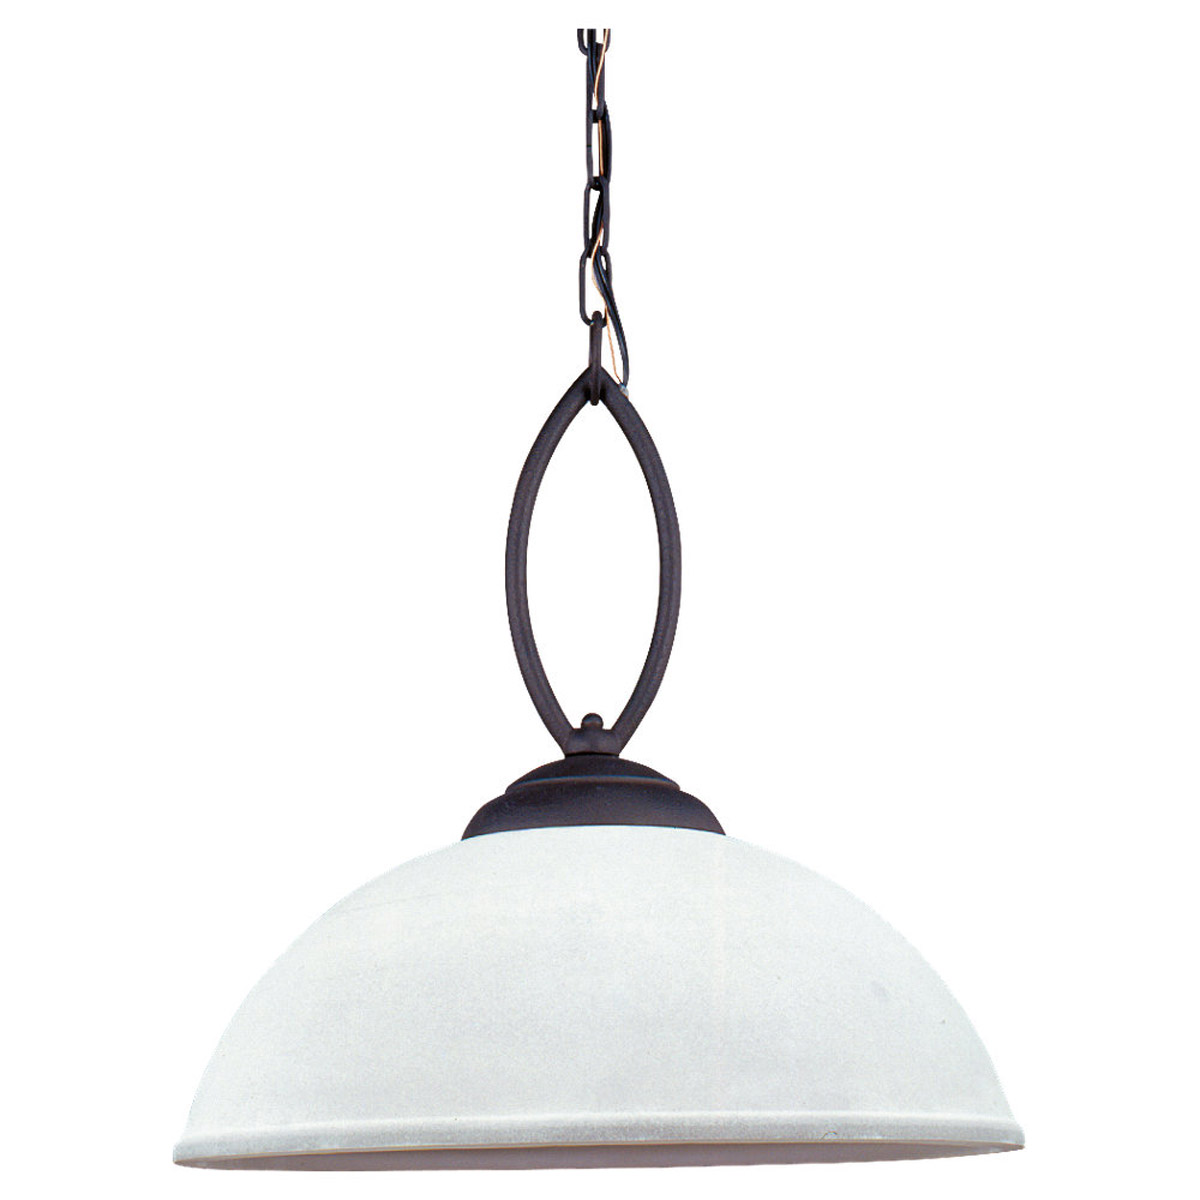 Sea Gull Lighting Pemberton 1 Light Pendant in Peppercorn 65074-799 photo